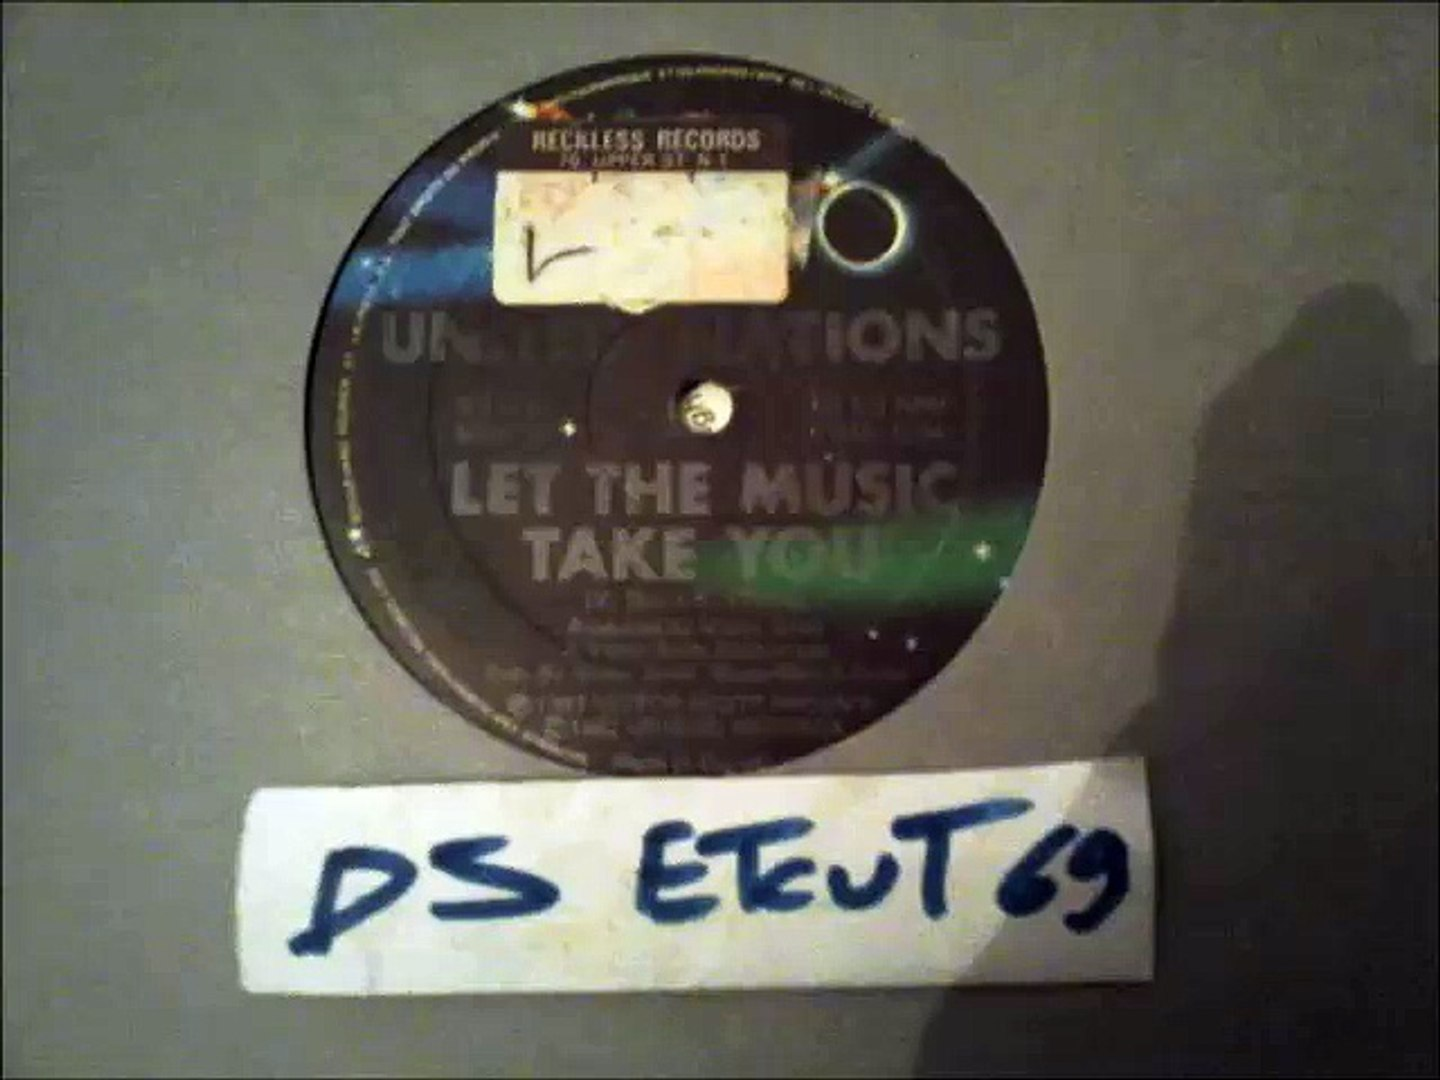 UNITED NATIONS -LET THE MUSIC TAKE YOU(RIP ETCUT)BLACK SUN REC 82